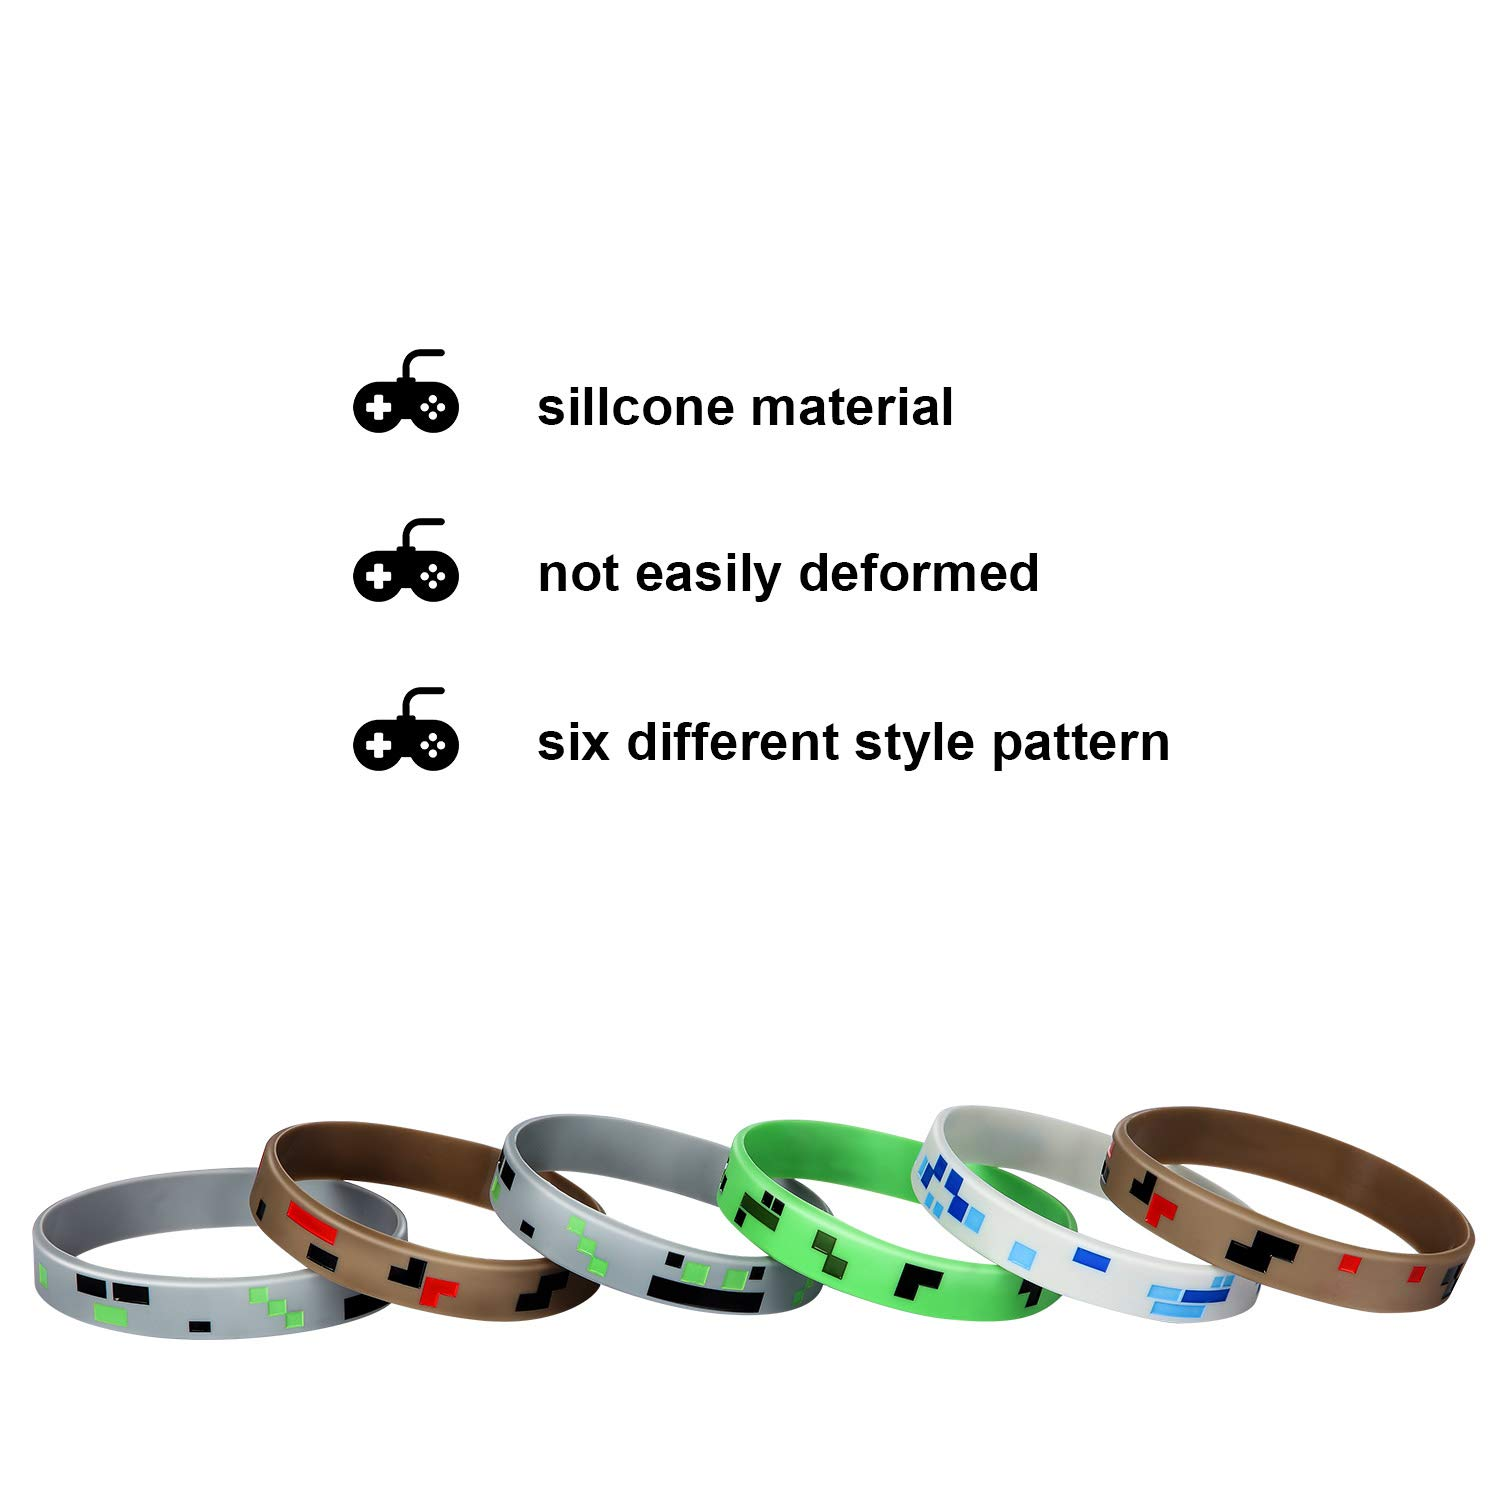 36 Pieces, Style 1 36 Pieces Pixelated Miner Crafting Style Character Wristband Bracelets Silicone Wristbands Pixelated Theme Bracelet Designs for Mining Themed or Crafting Style Party Supplies